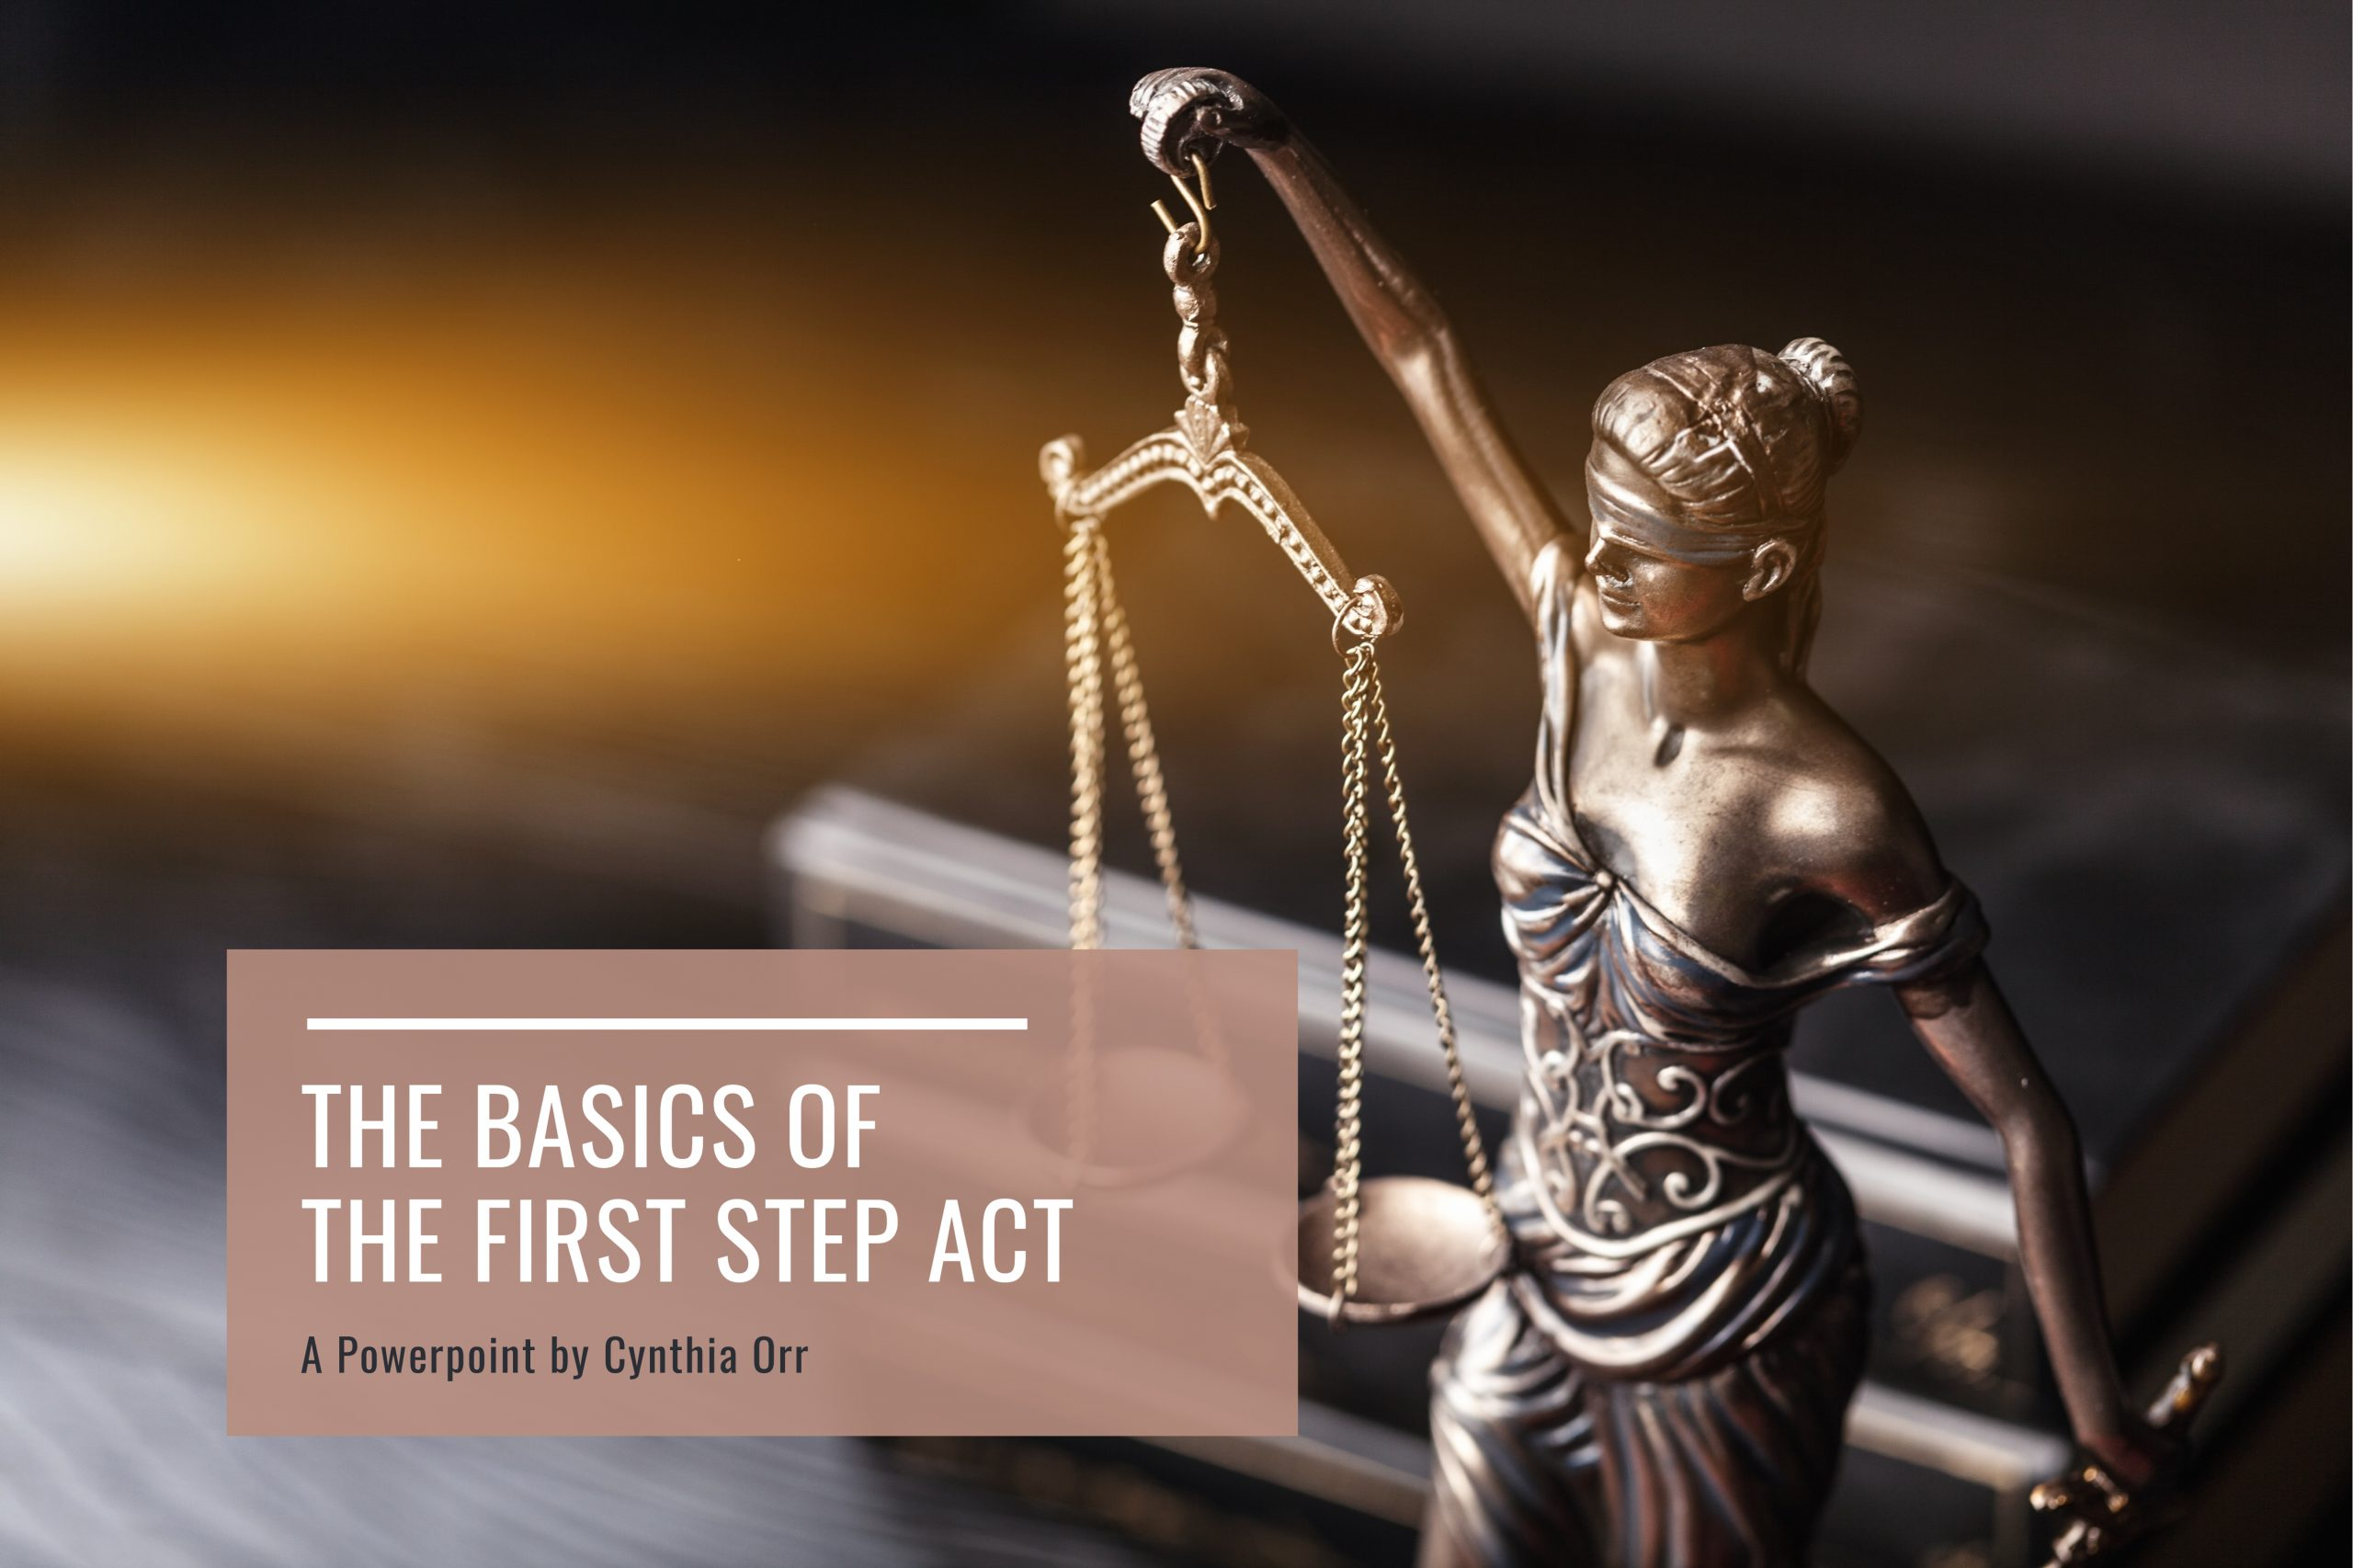 The Basics of the First Step Act